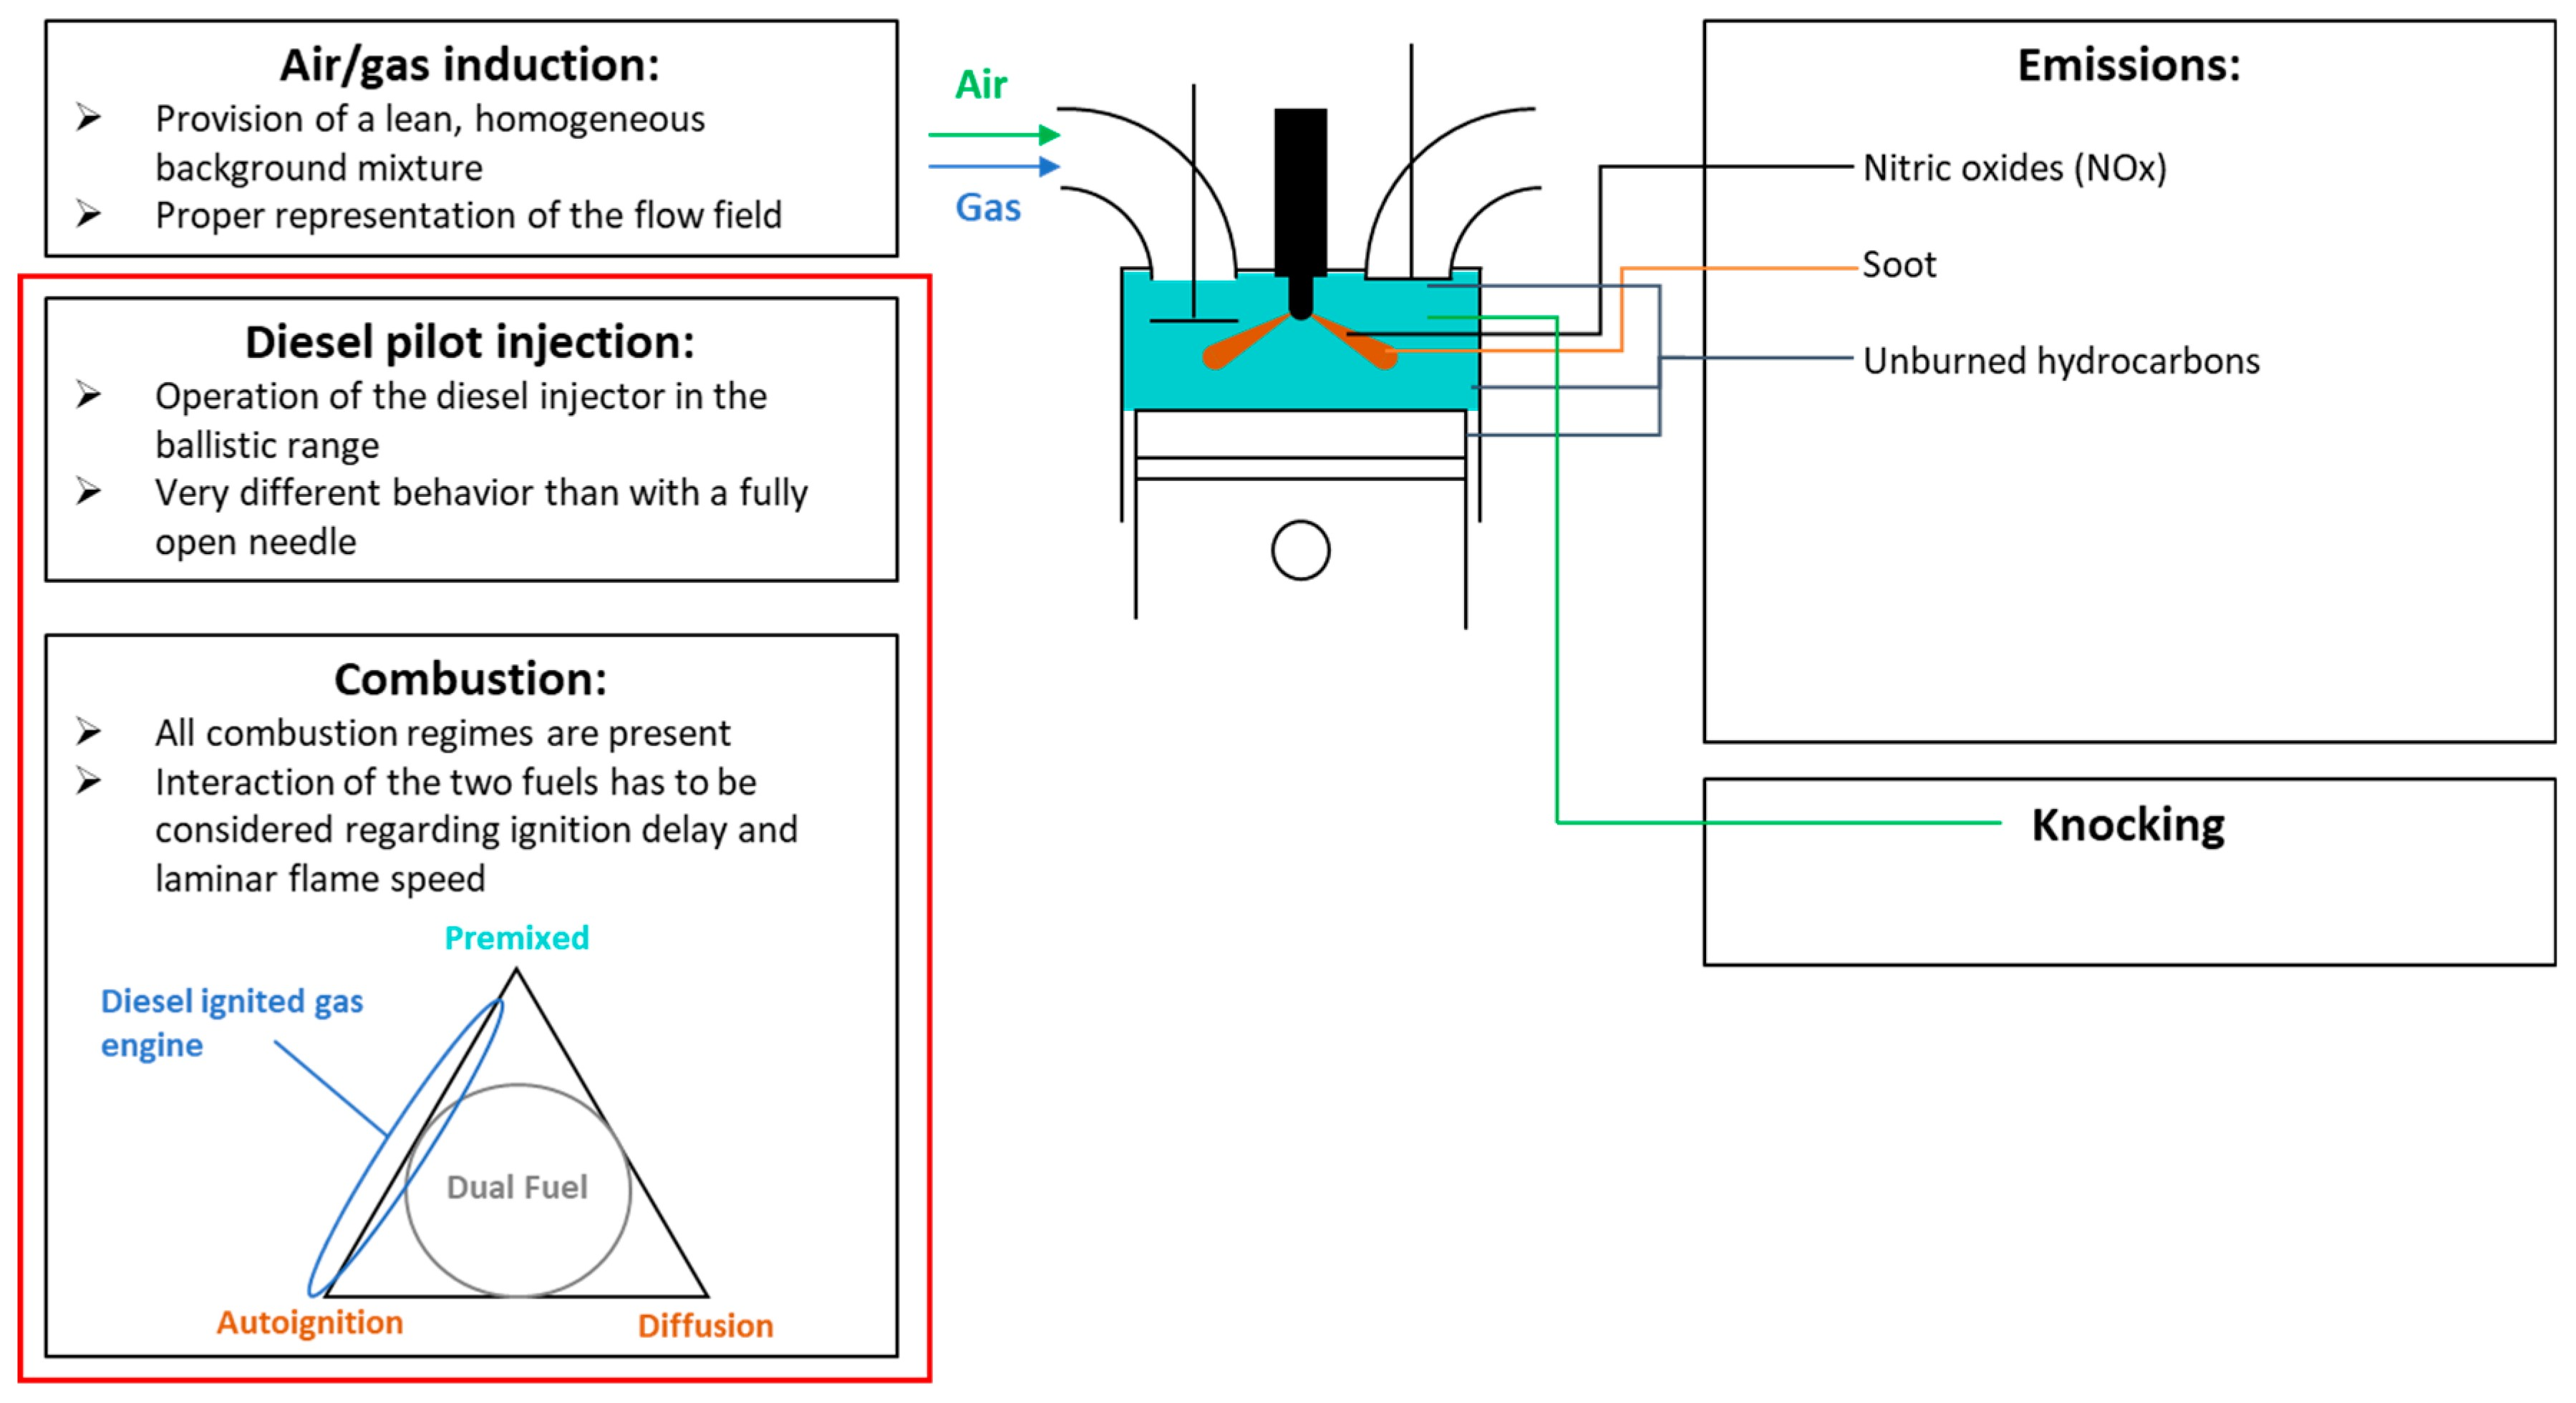 Simple Diesel Engine Diagram Energies Free Full Text Of Simple Diesel Engine Diagram Applied Sciences Free Full Text